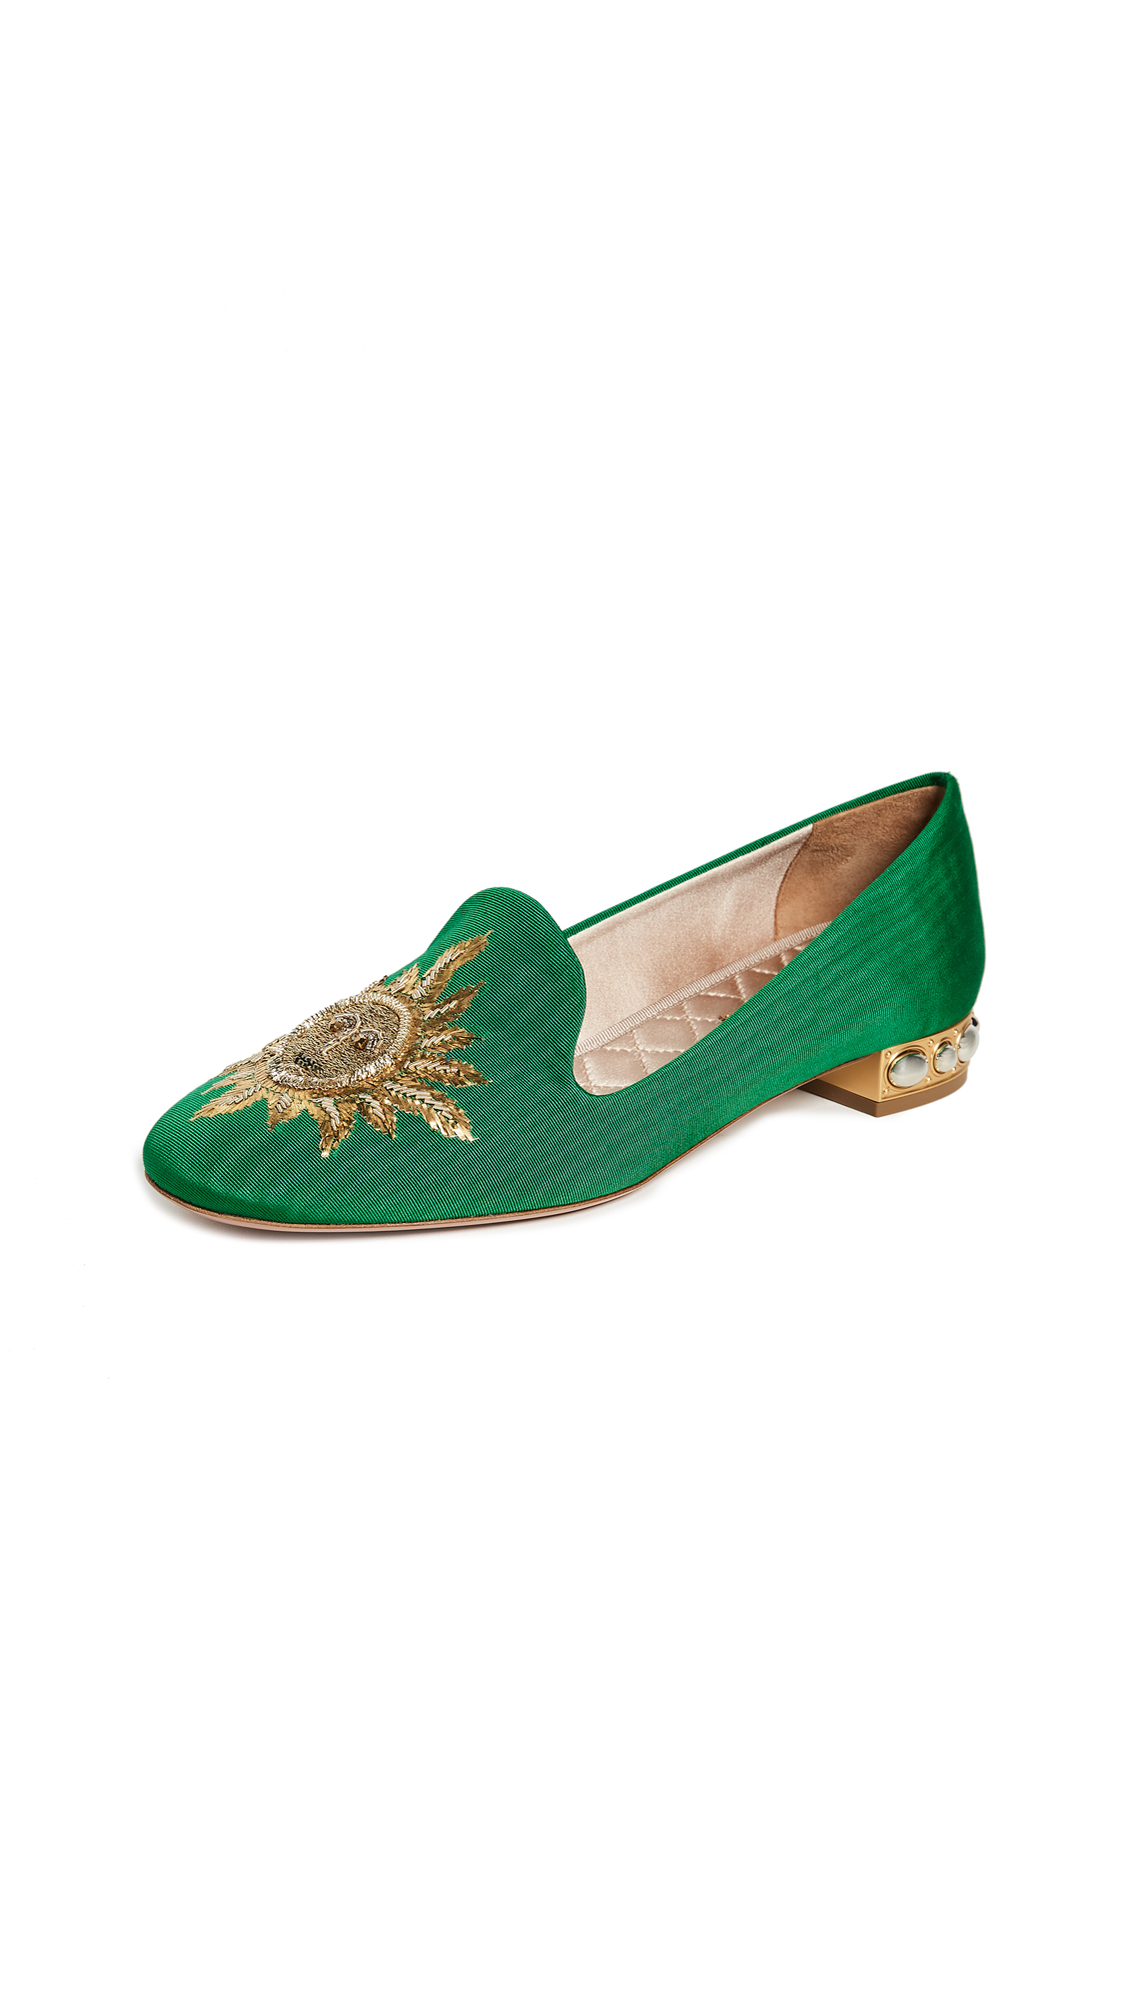 Aquazzura Embellished Slippers - Jasmine Green